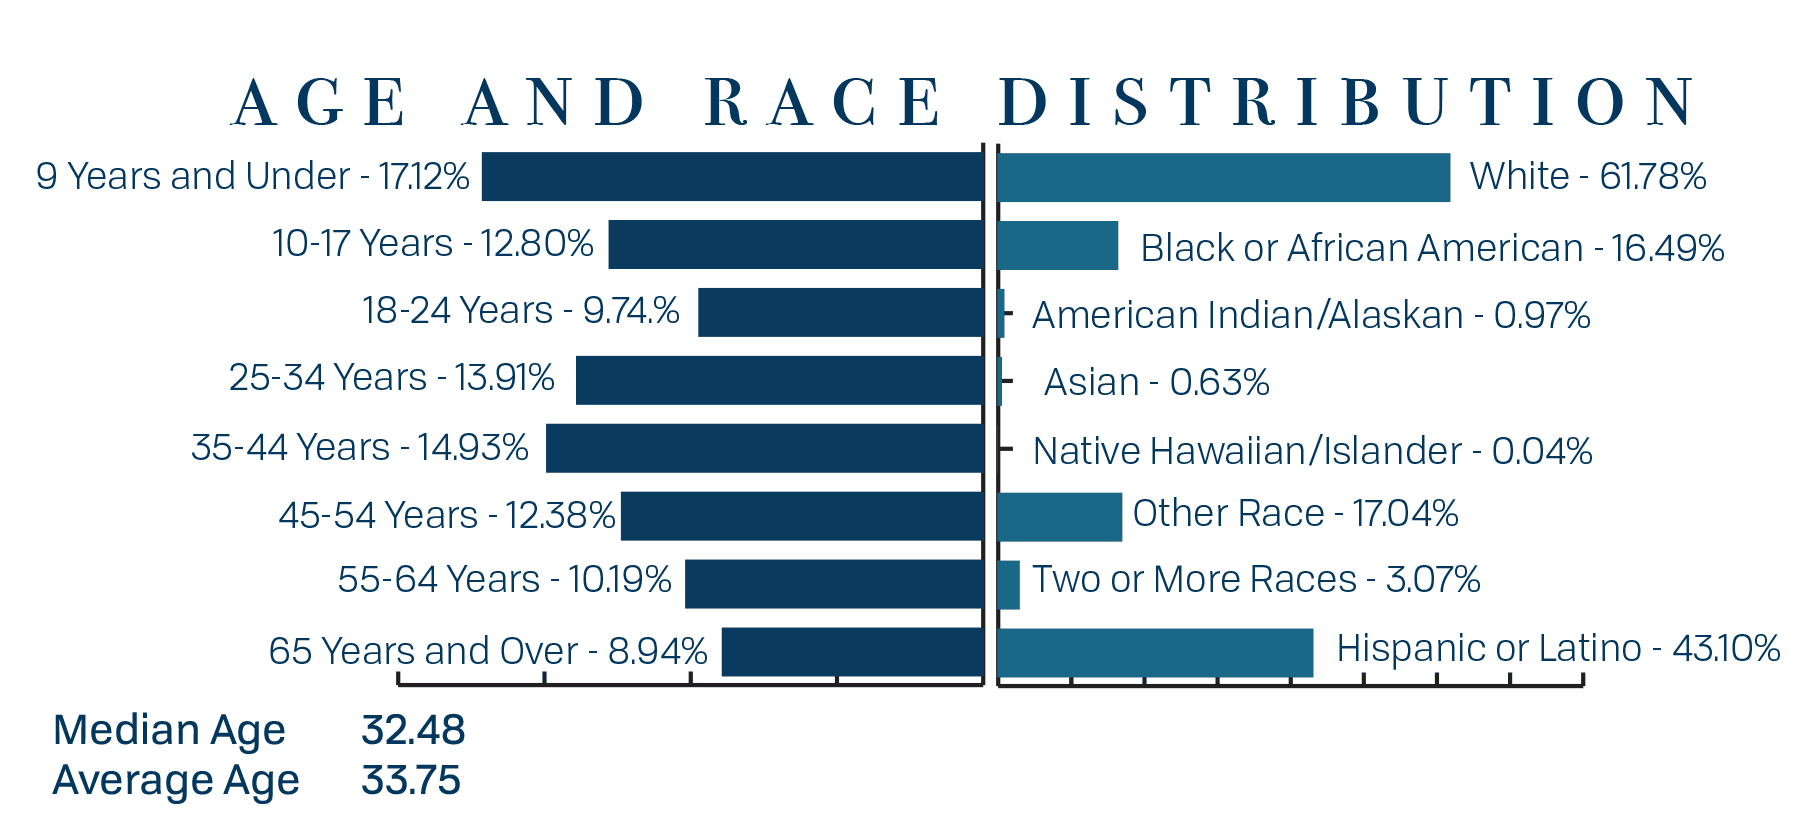 Age and Race Distribution